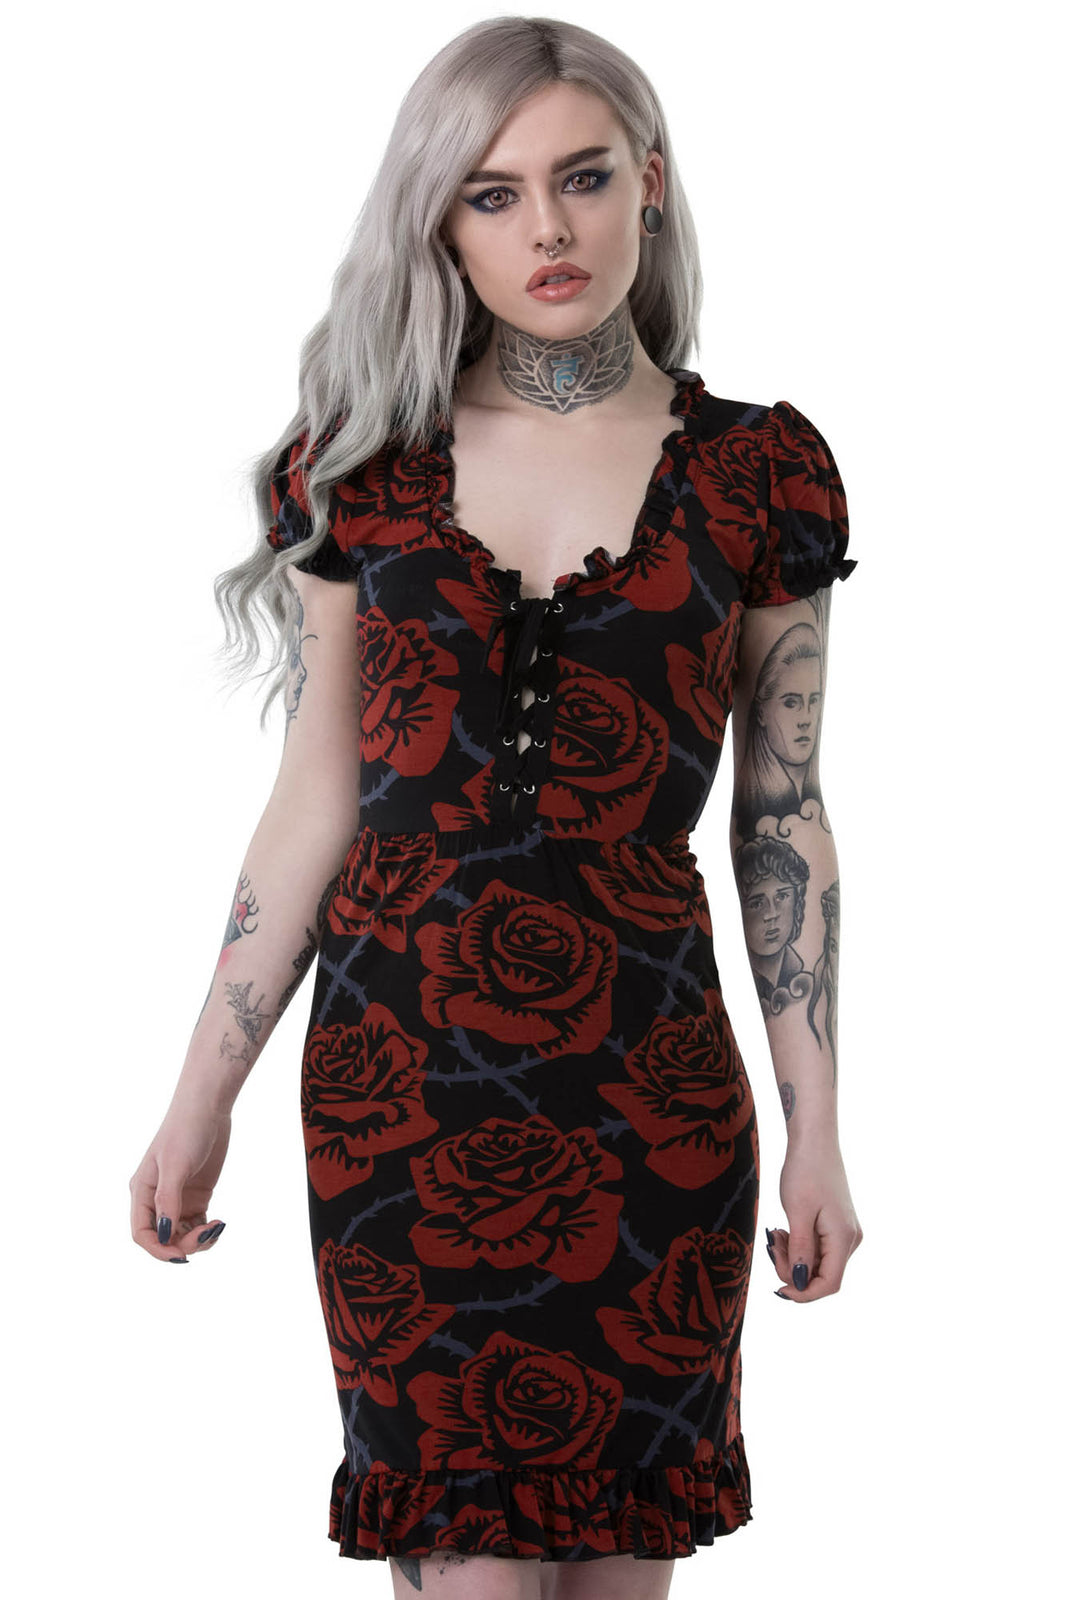 Eden Doll Dress [B]